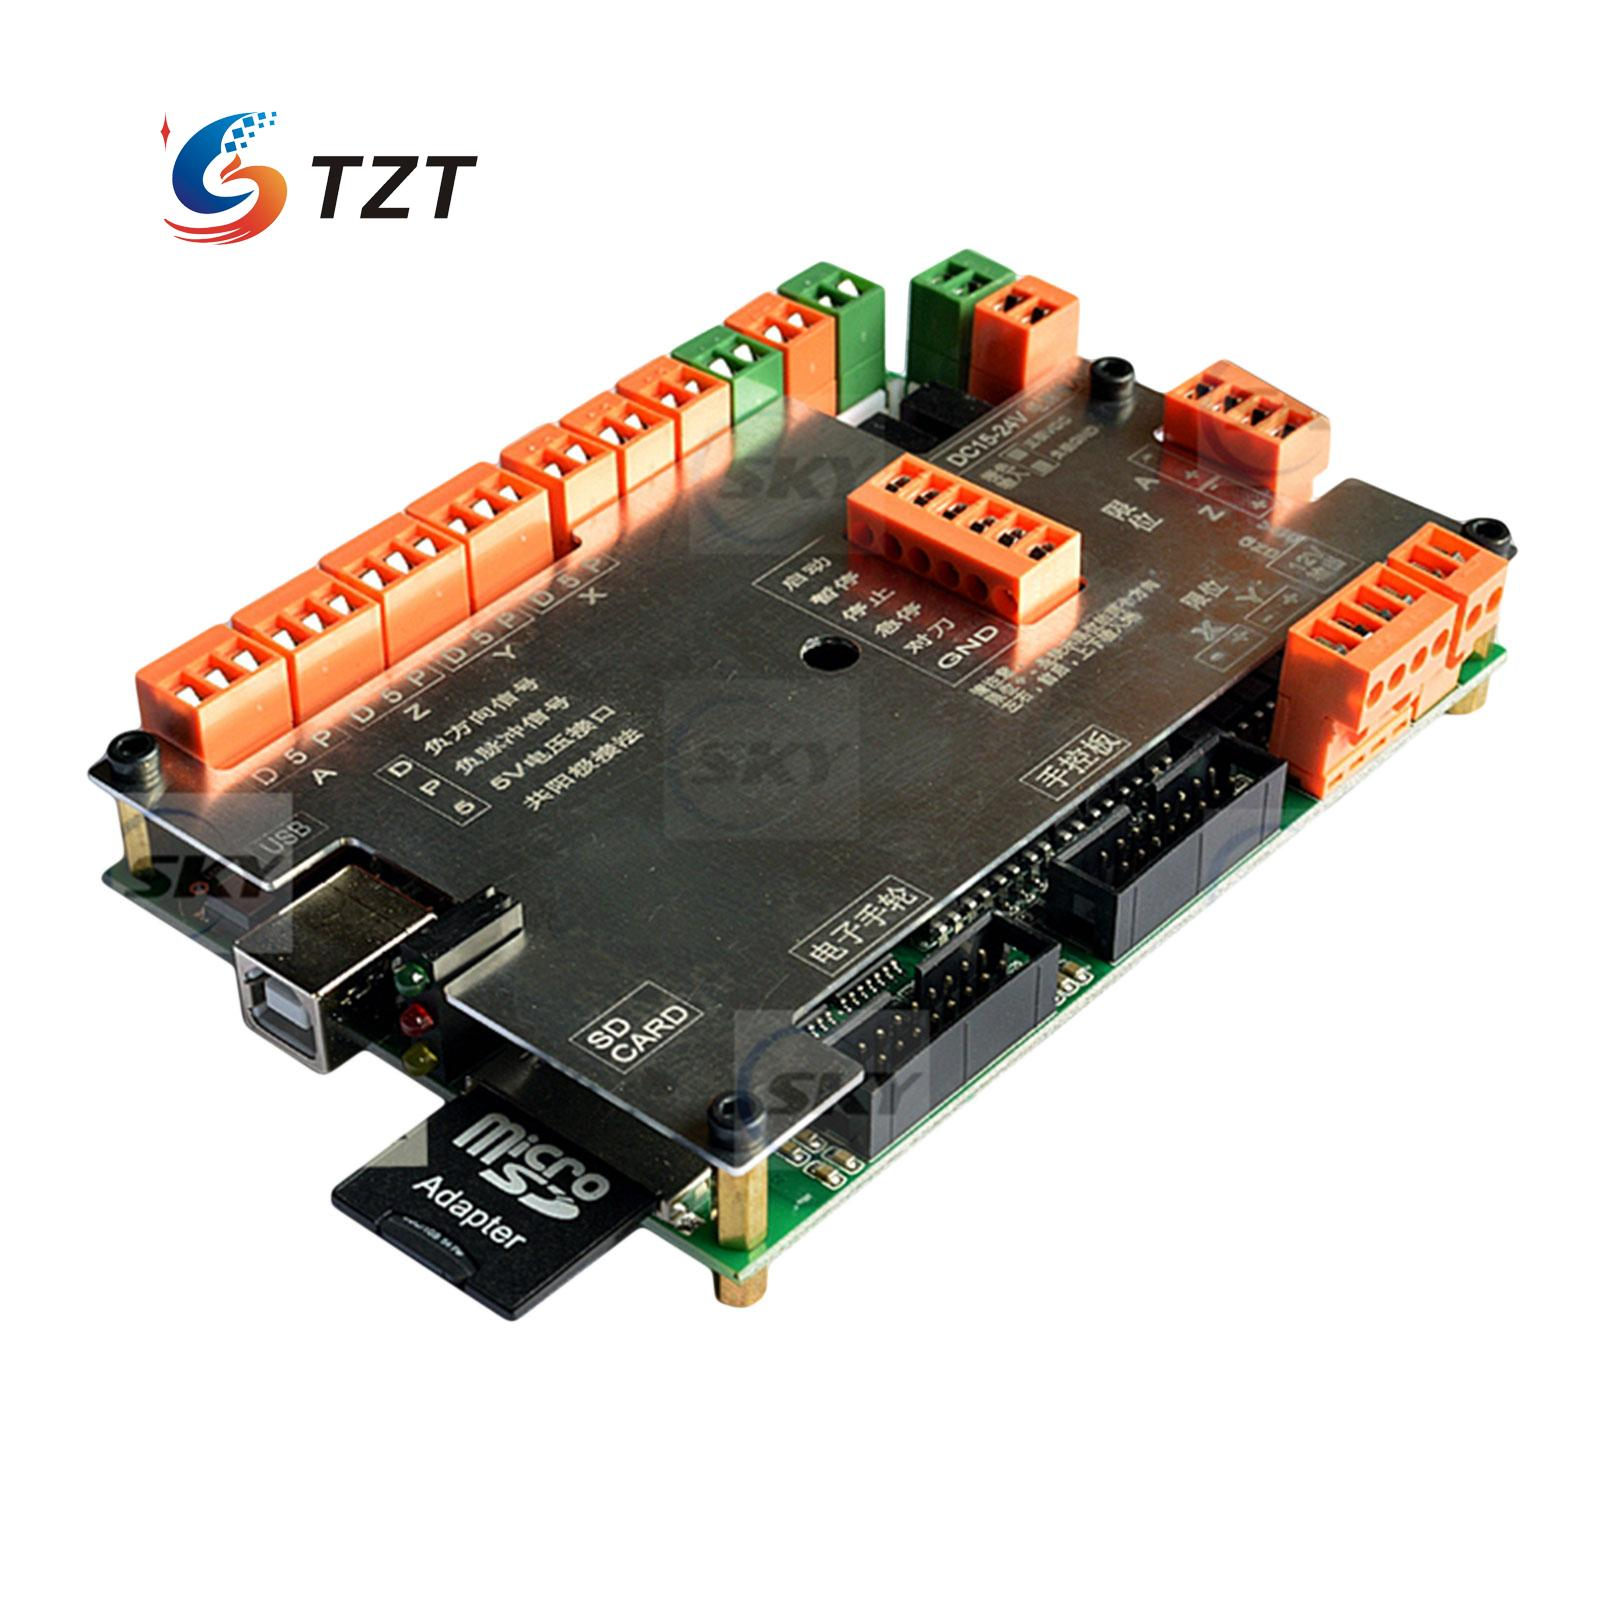 USB CNC MK4 4 Axis Motion Control Card Offline Engraving Machine Controller CNC Router